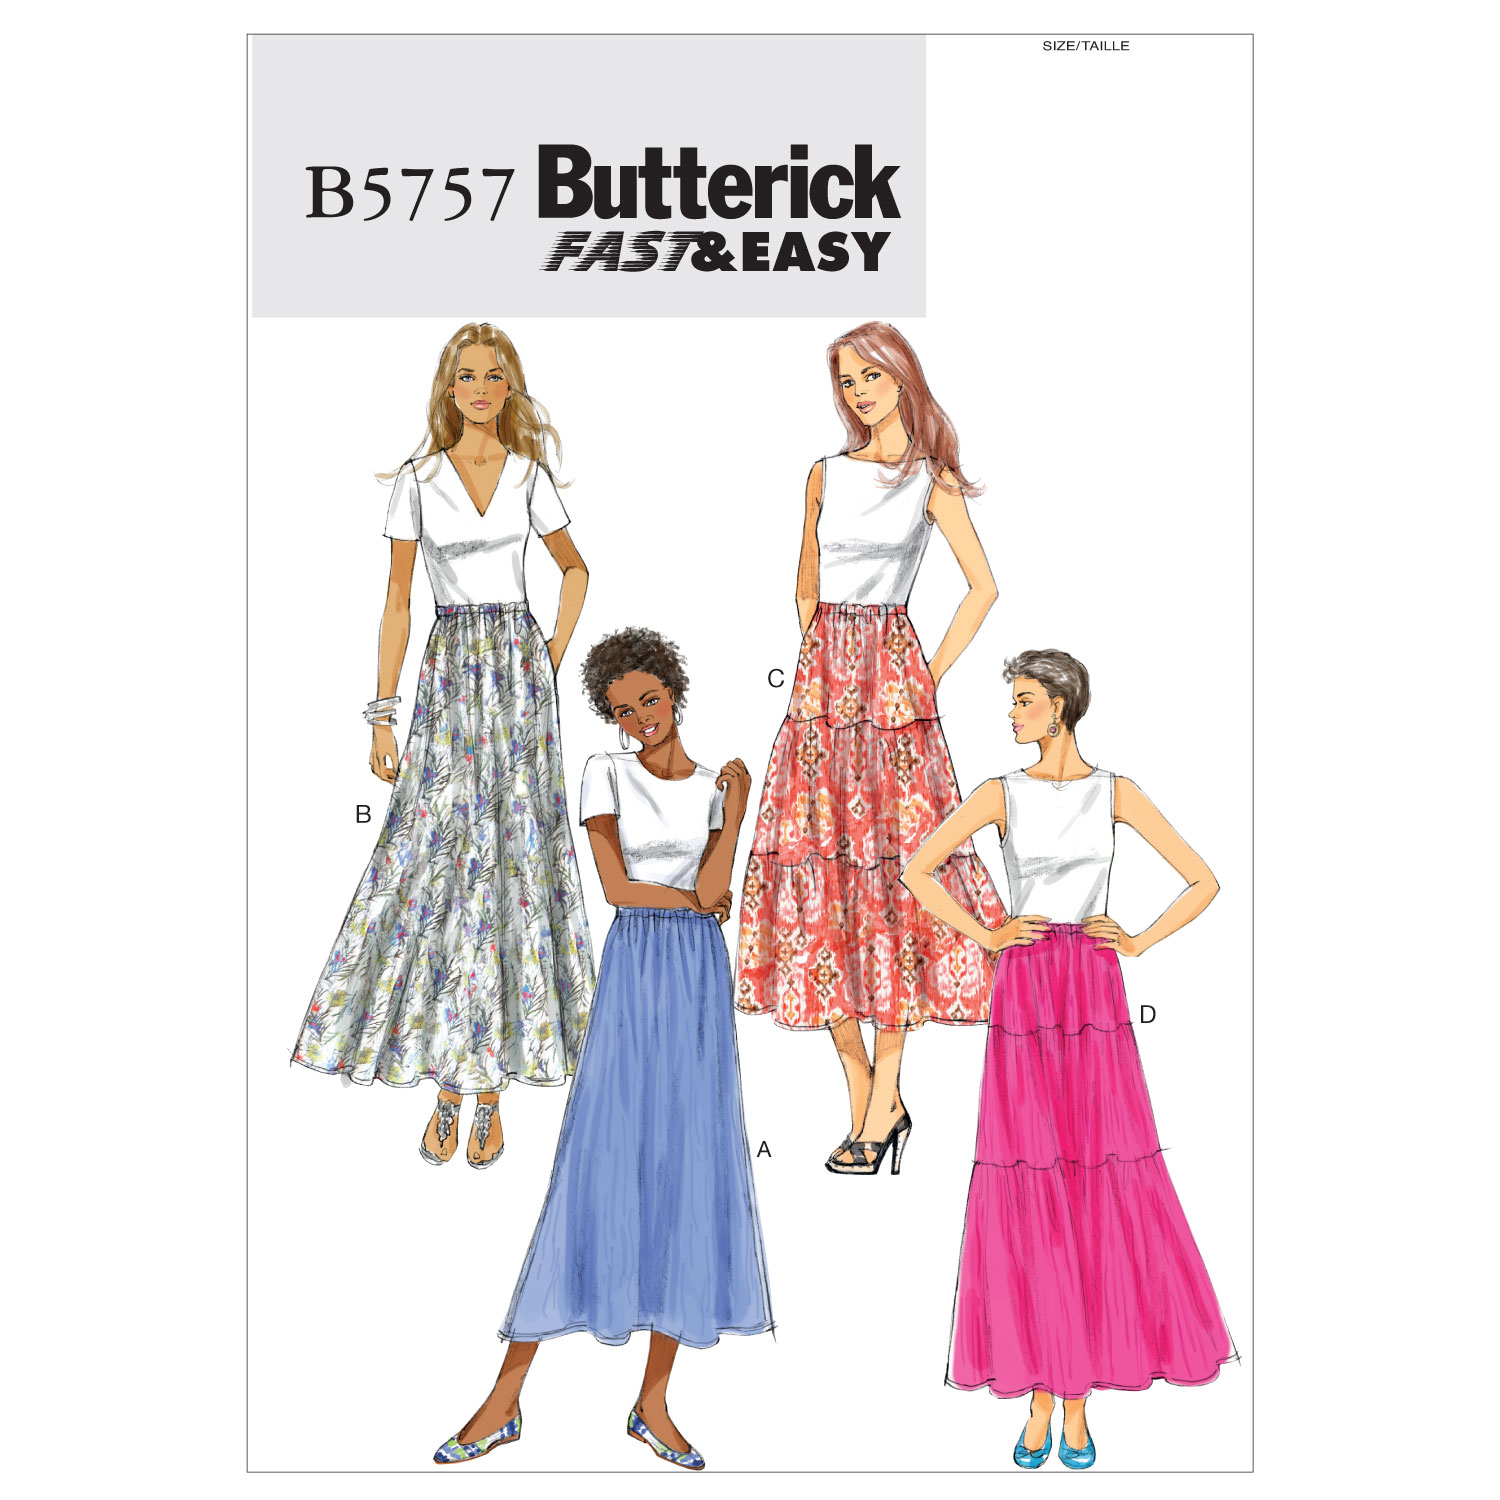 Butterick Misses Skirt-B5757